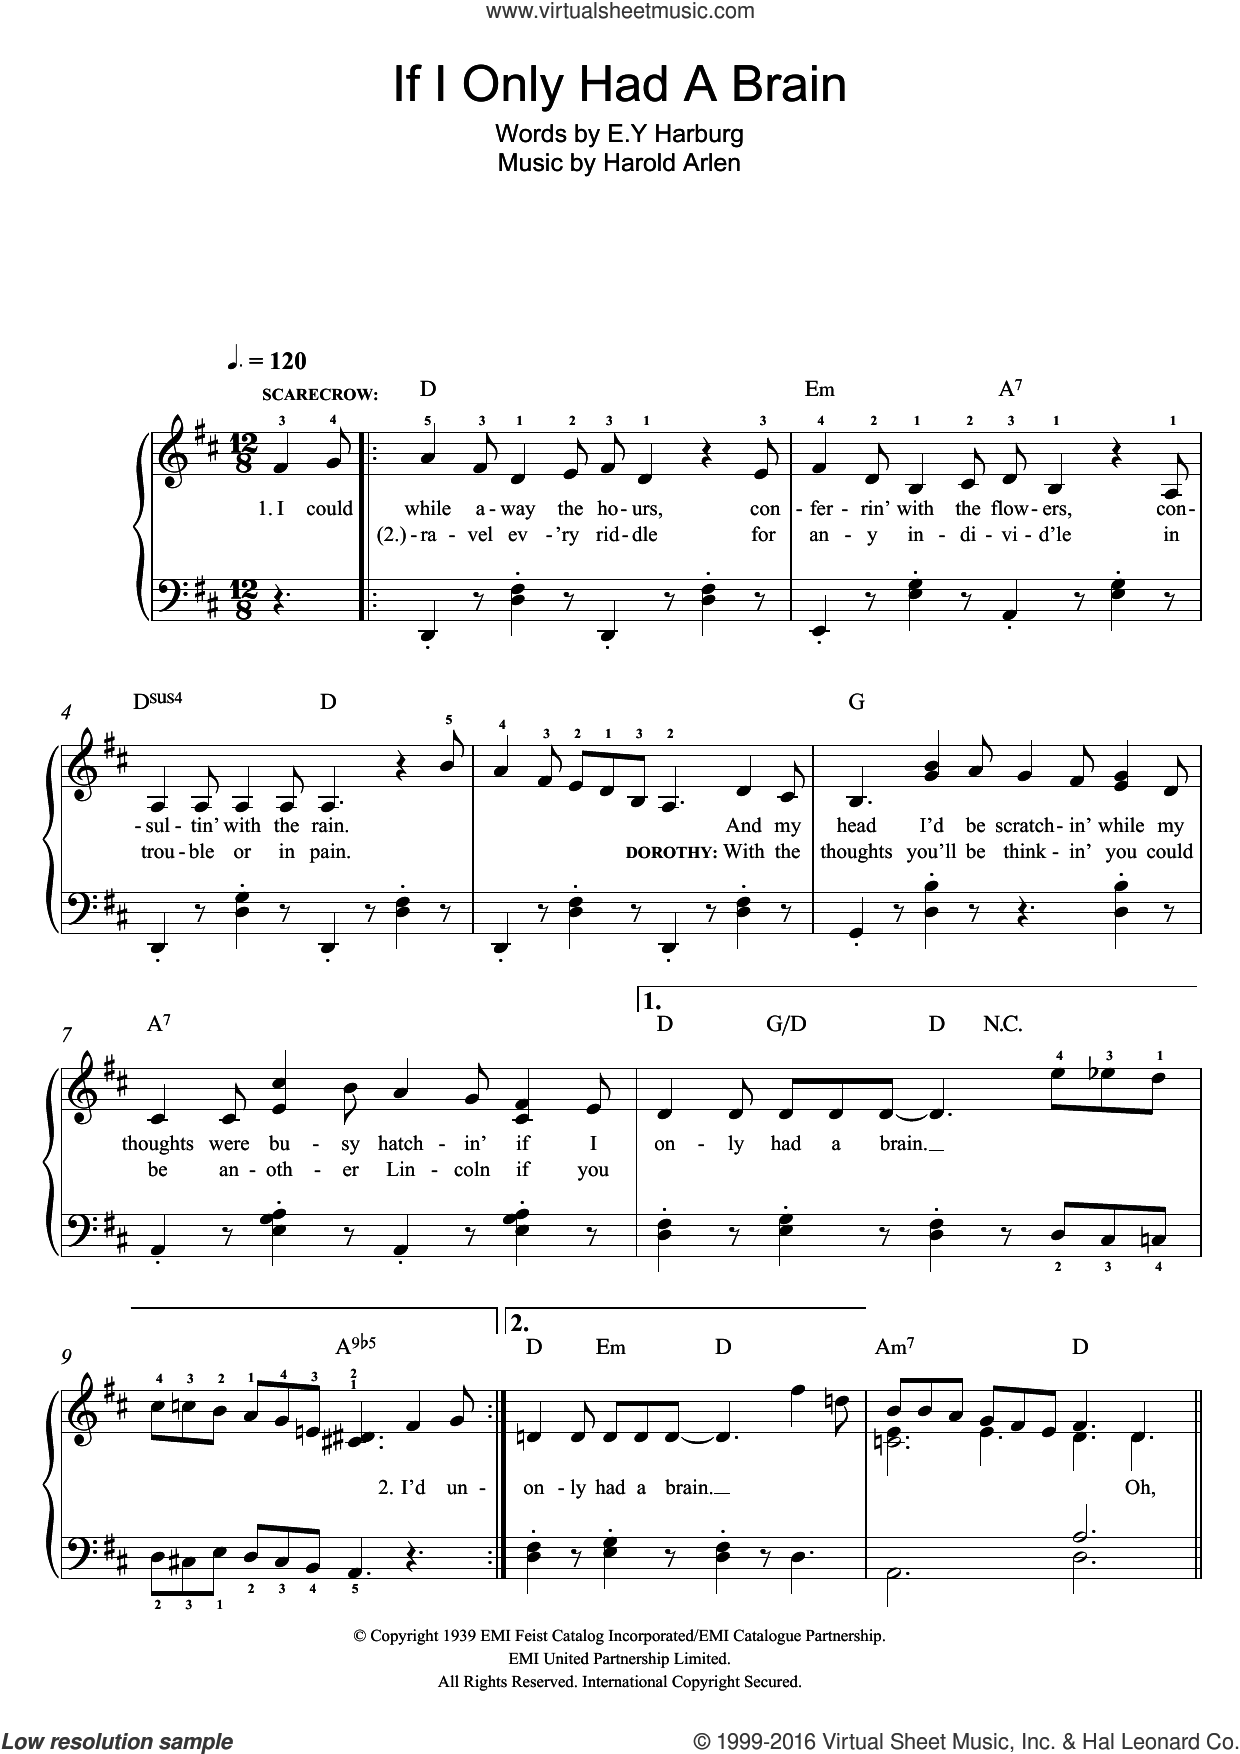 If I Only Had A Brain, (easy) sheet music for piano solo by Harold Arlen and E.Y. Harburg, easy skill level